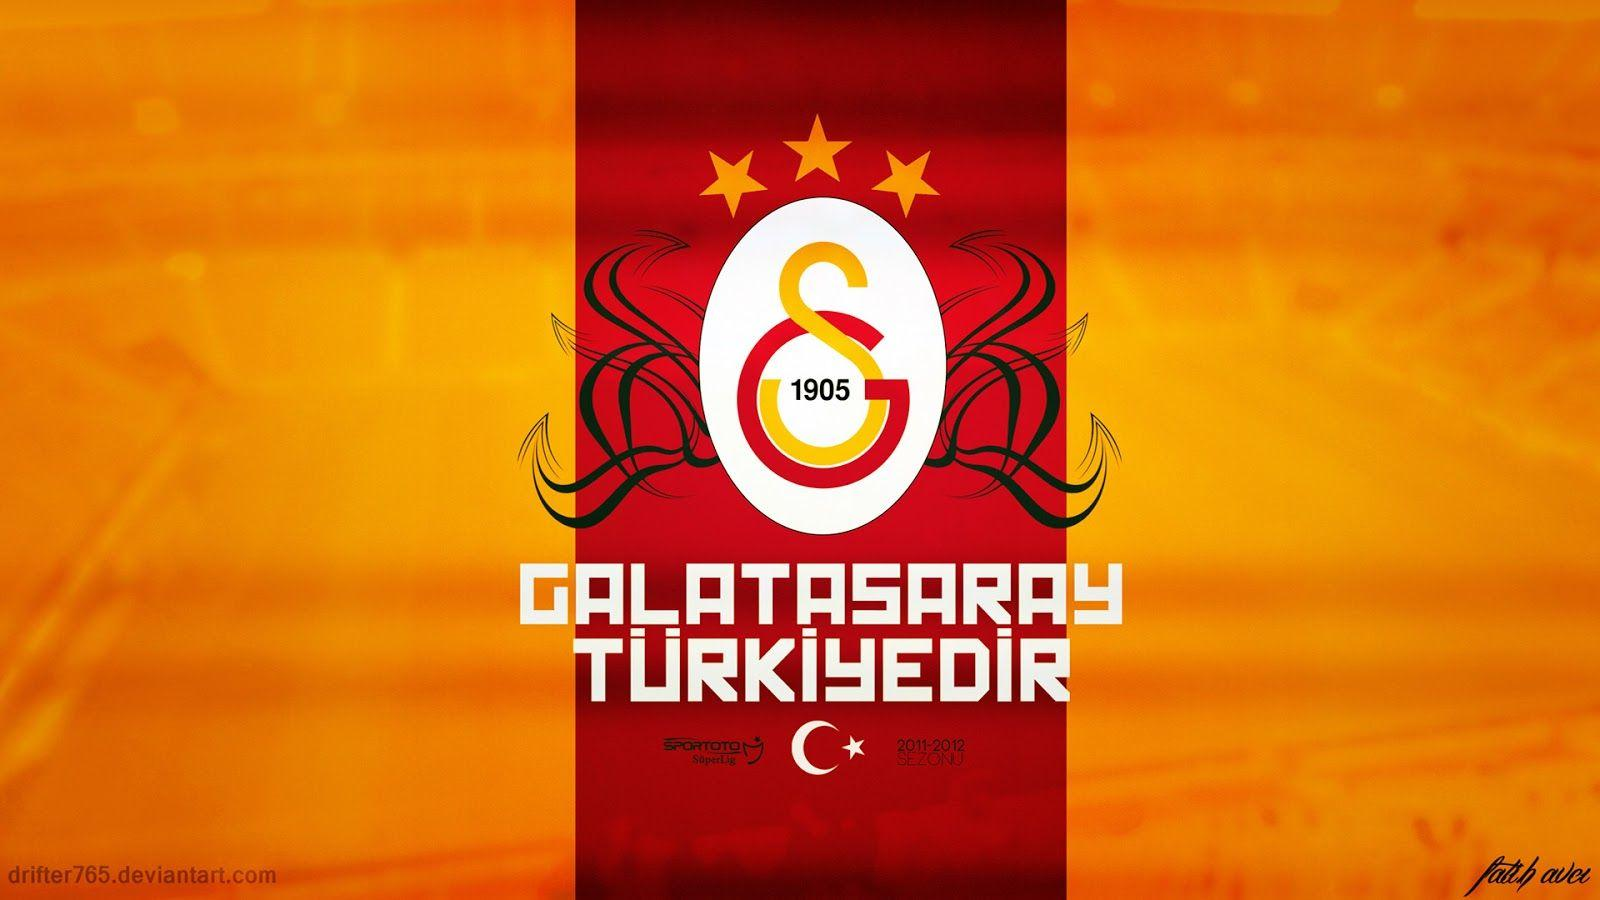 1000+ images about Galatasaray on Pinterest | Logos, Wallpapers ...